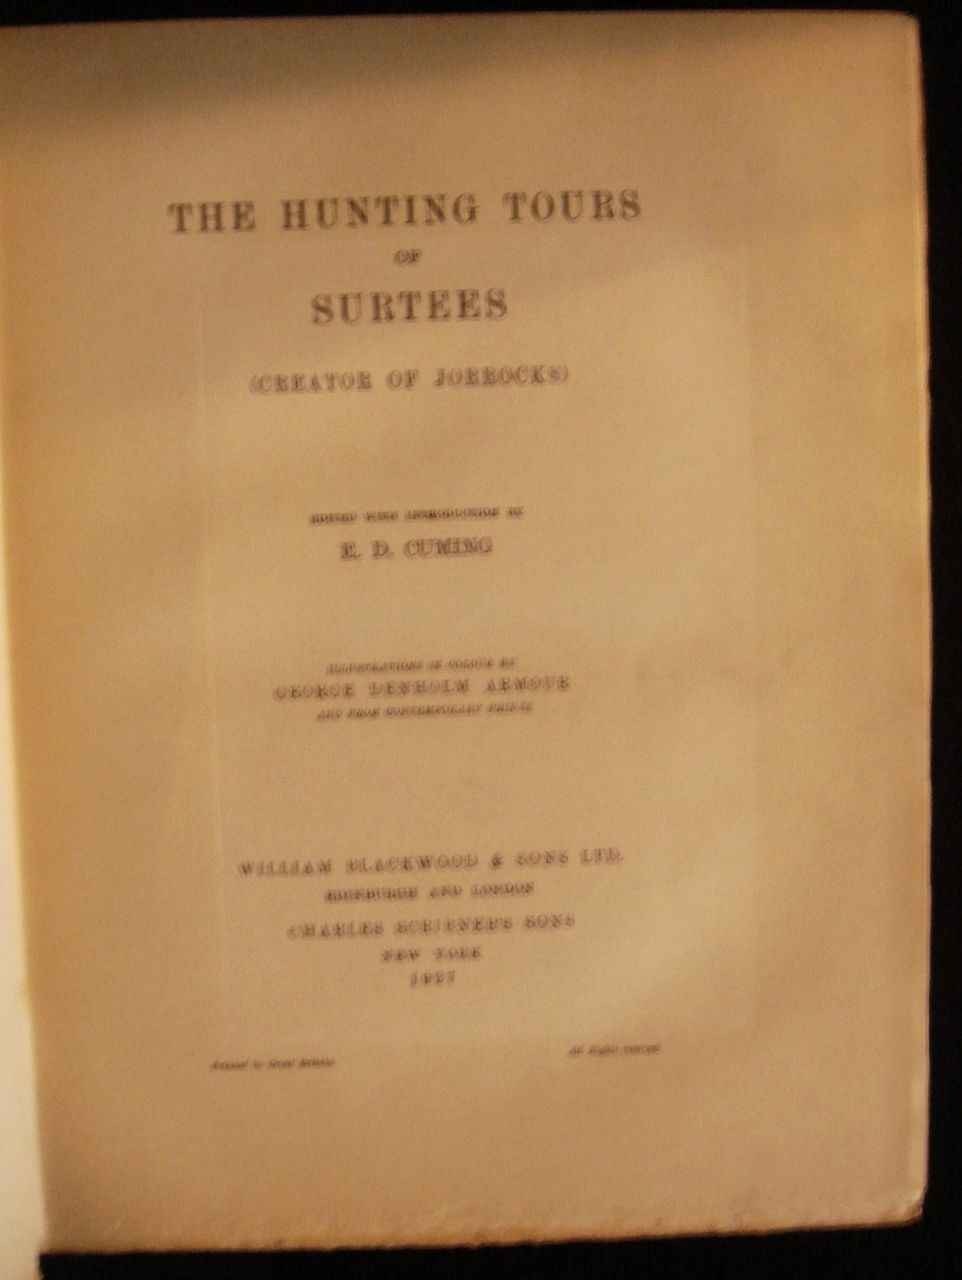 HUNTING TOURS OF SURTEES, by E.D. Cuming - 1927